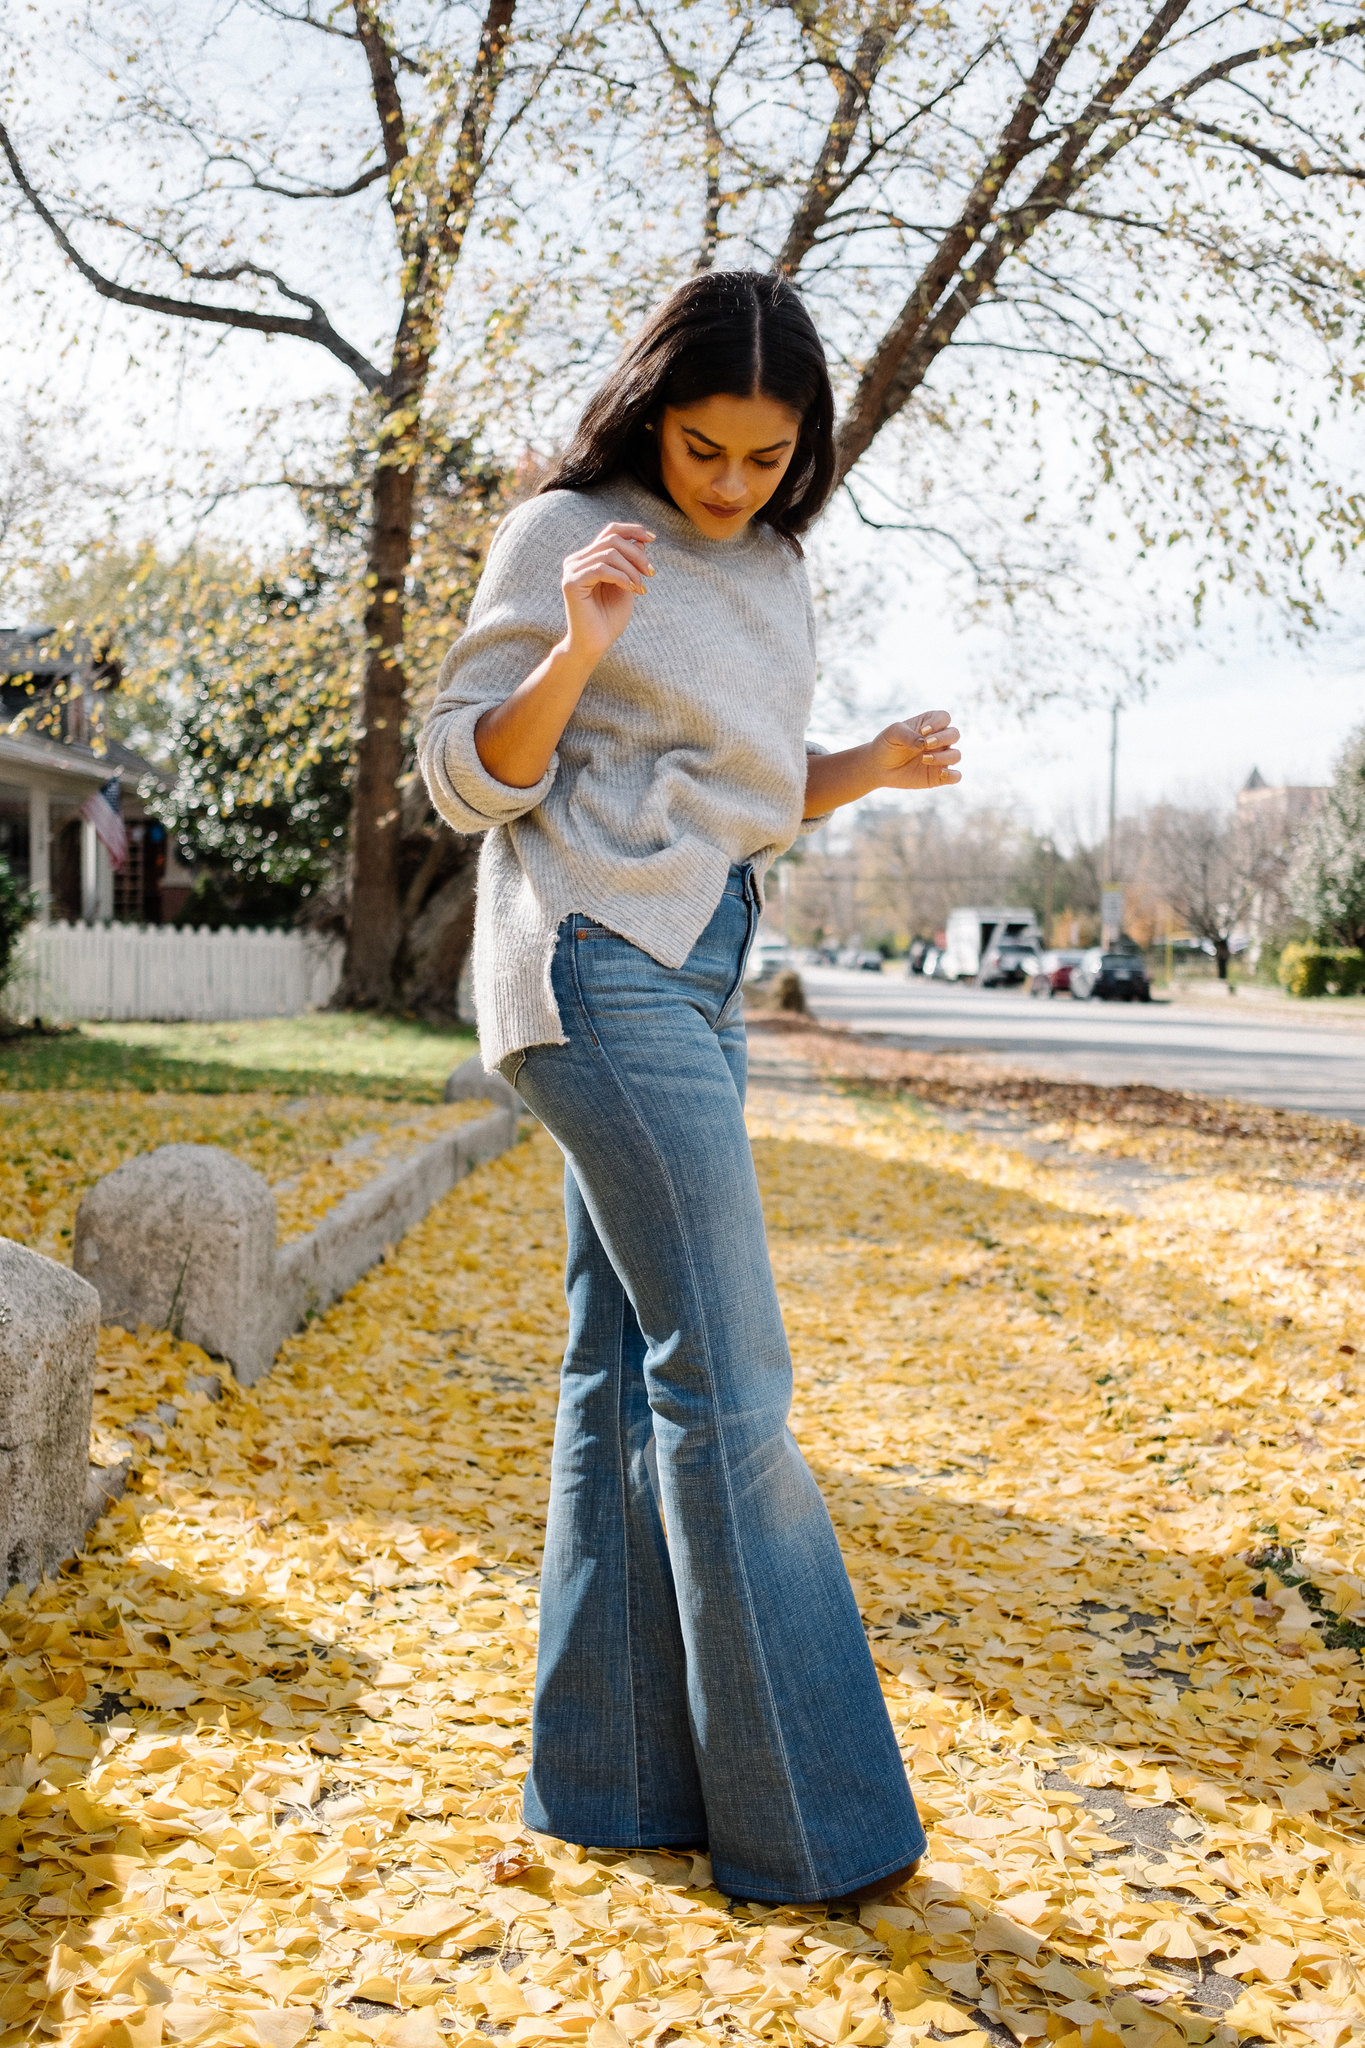 Priya the Blog, Nashville fashion blog, Fall fashion, Fall outfit with flared jeans, Madewell Flea Market Flares, velvet choker, gray sweater and flared jeans